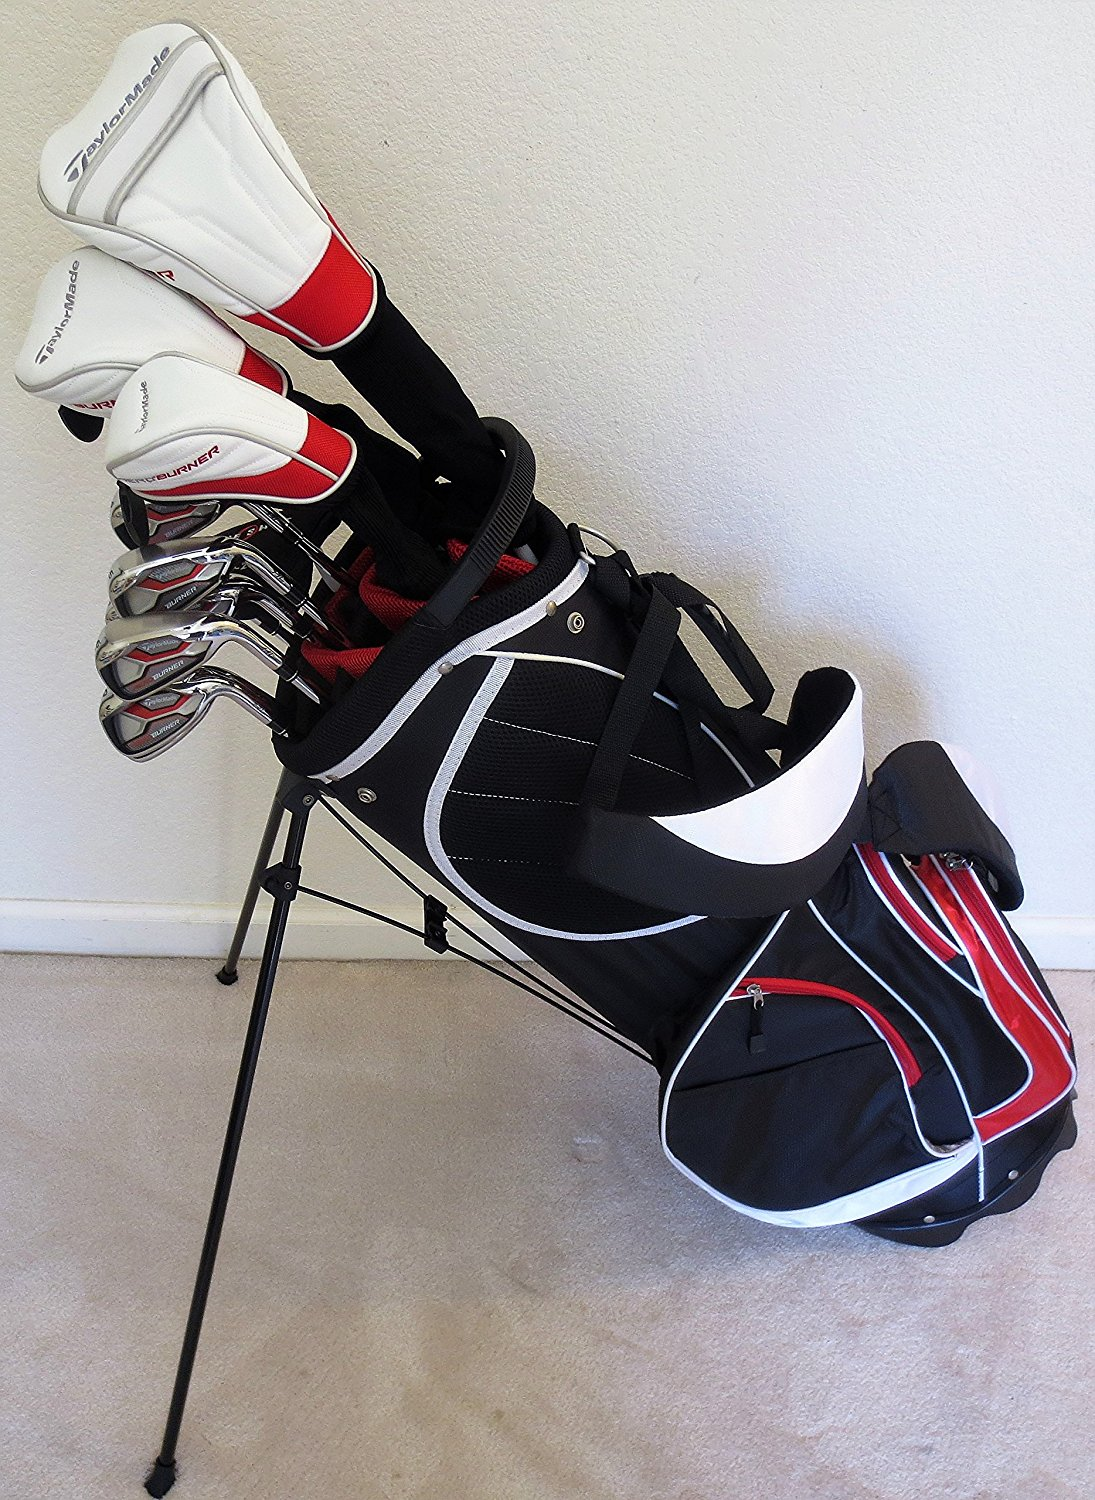 Click here to buy Mens Taylor Made Regular Flex Complete Golf Set Driver, Fairway Wood, Hybrid, Irons, Putter Clubs Stand Bag... by TaylorMade.